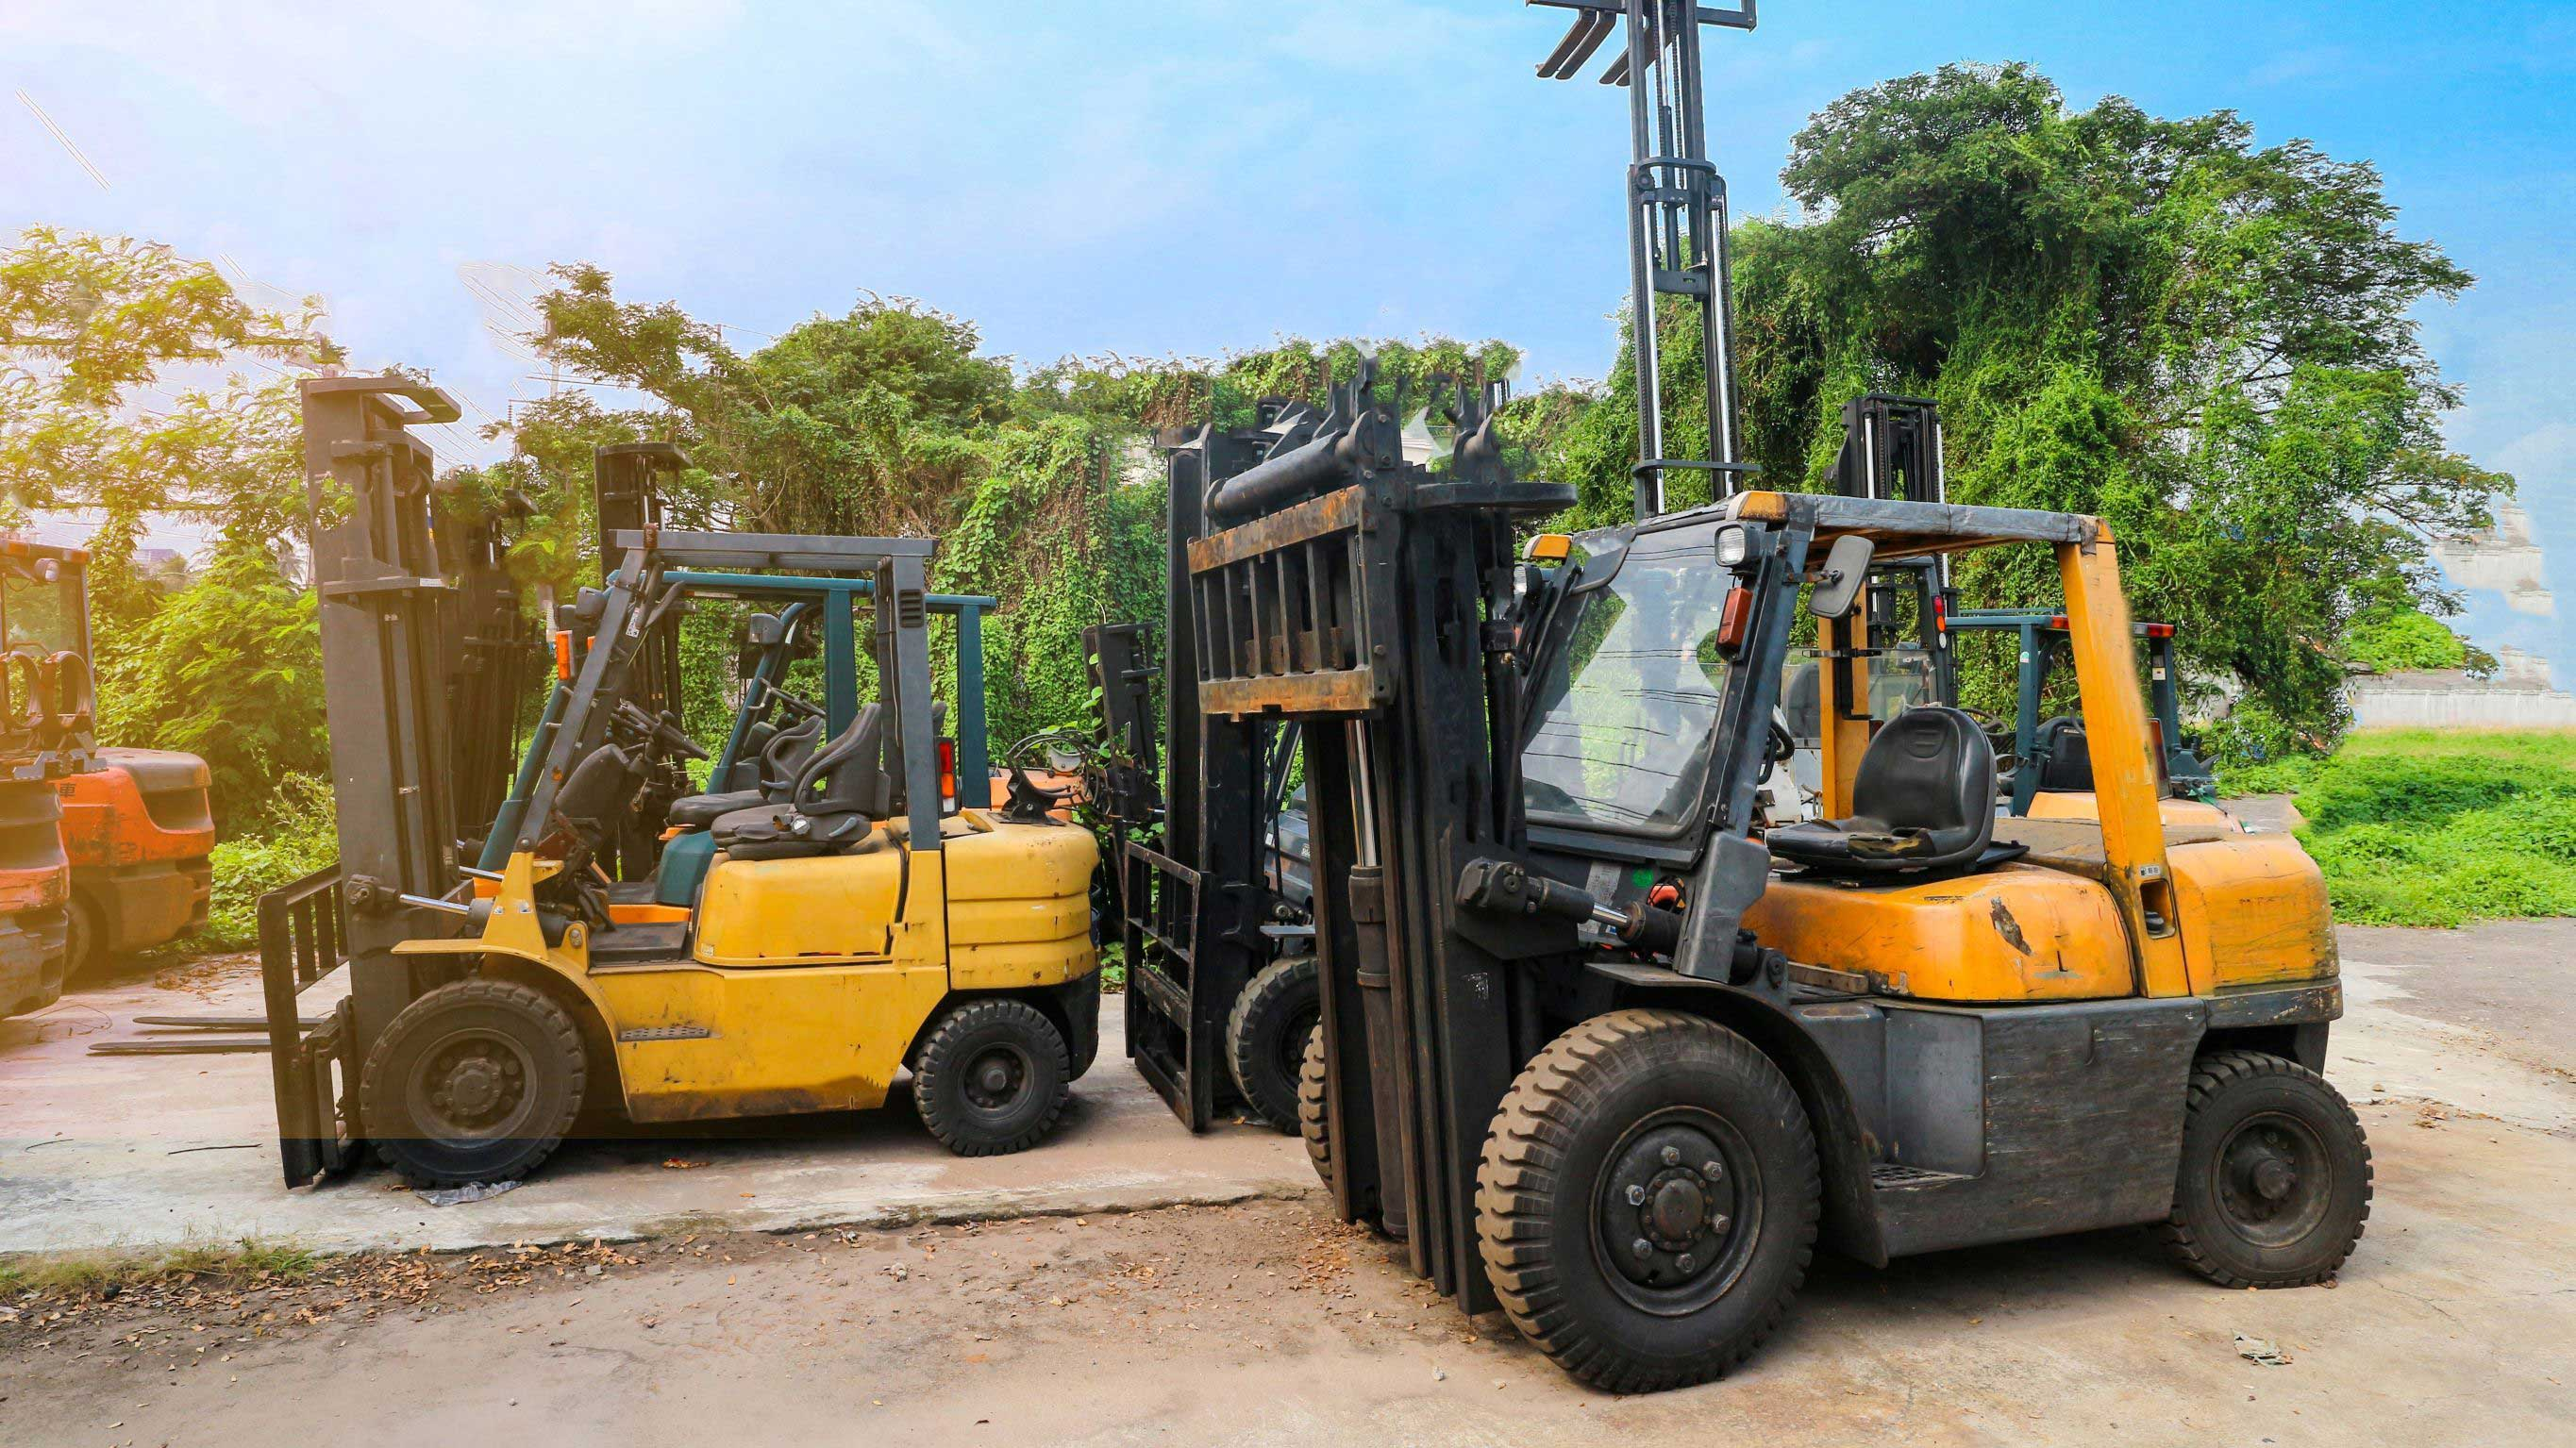 How Important Are Forklift Hours? Here's What You Need to Know